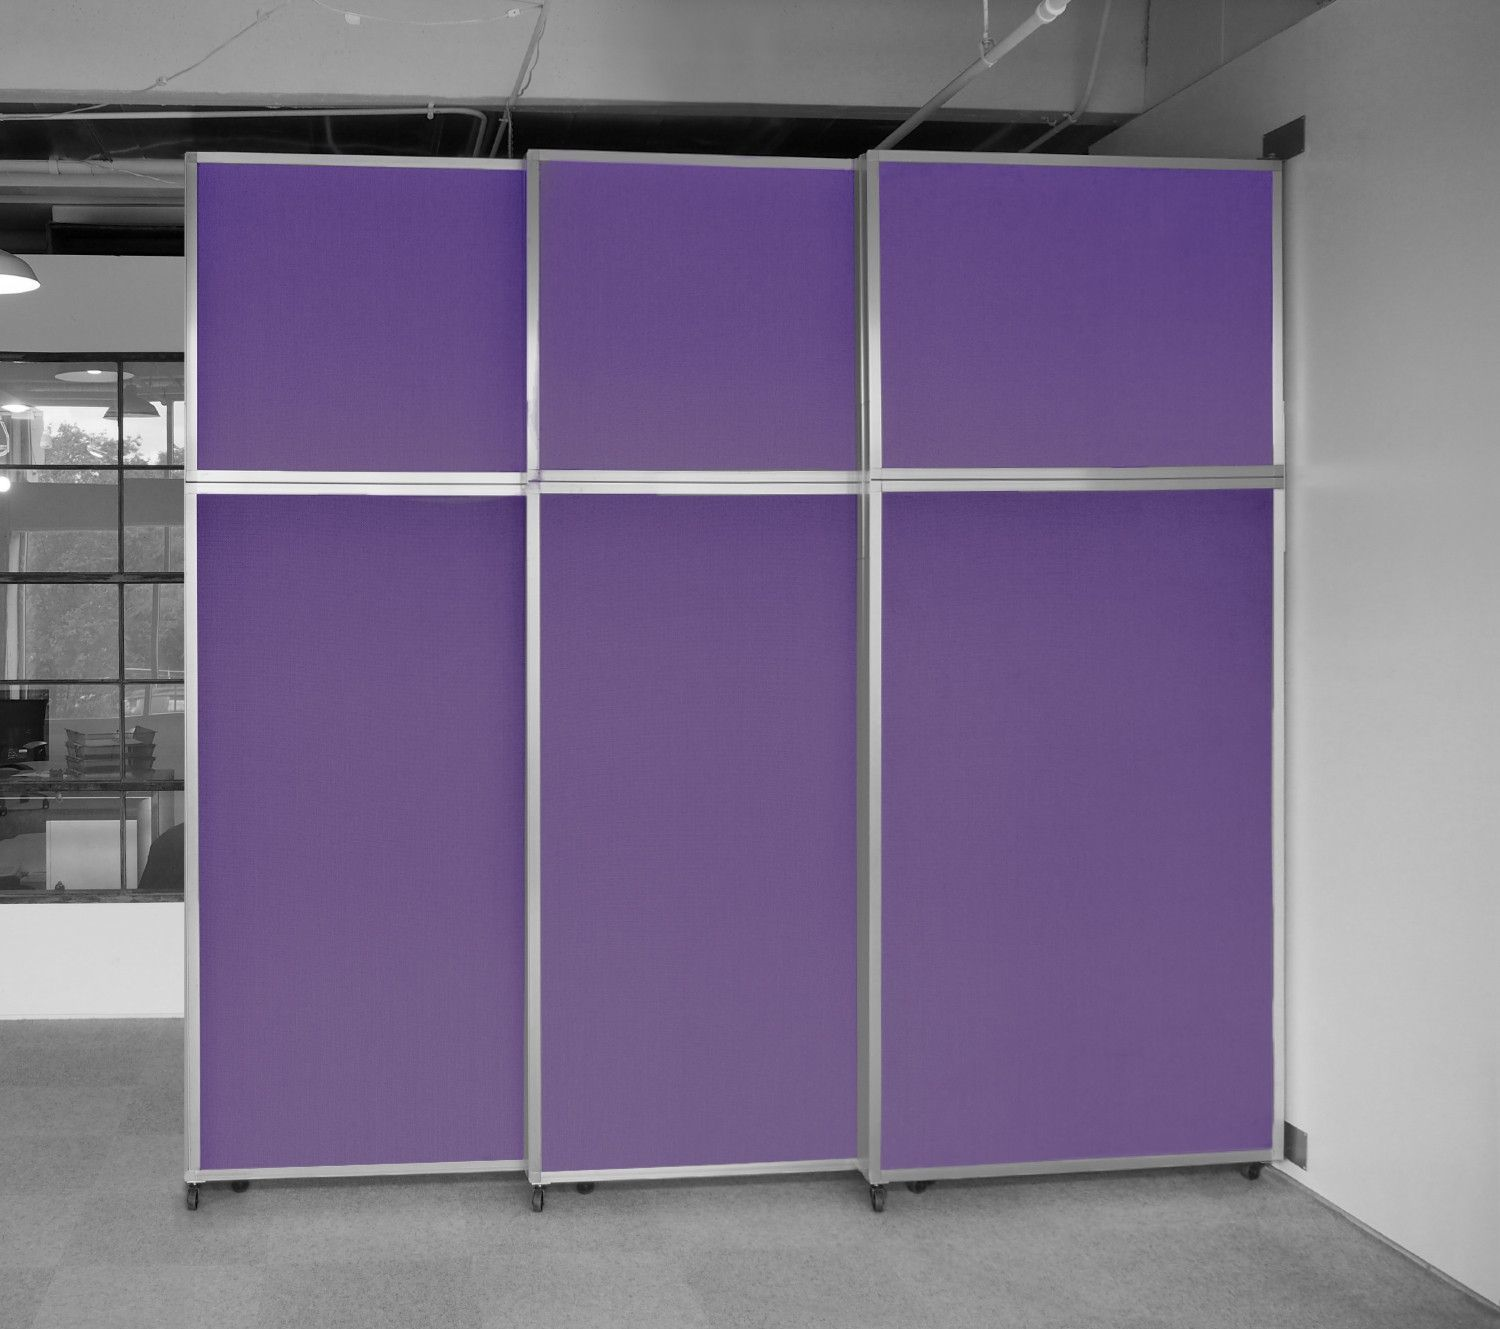 Wall Mounted Retractable Room Divider